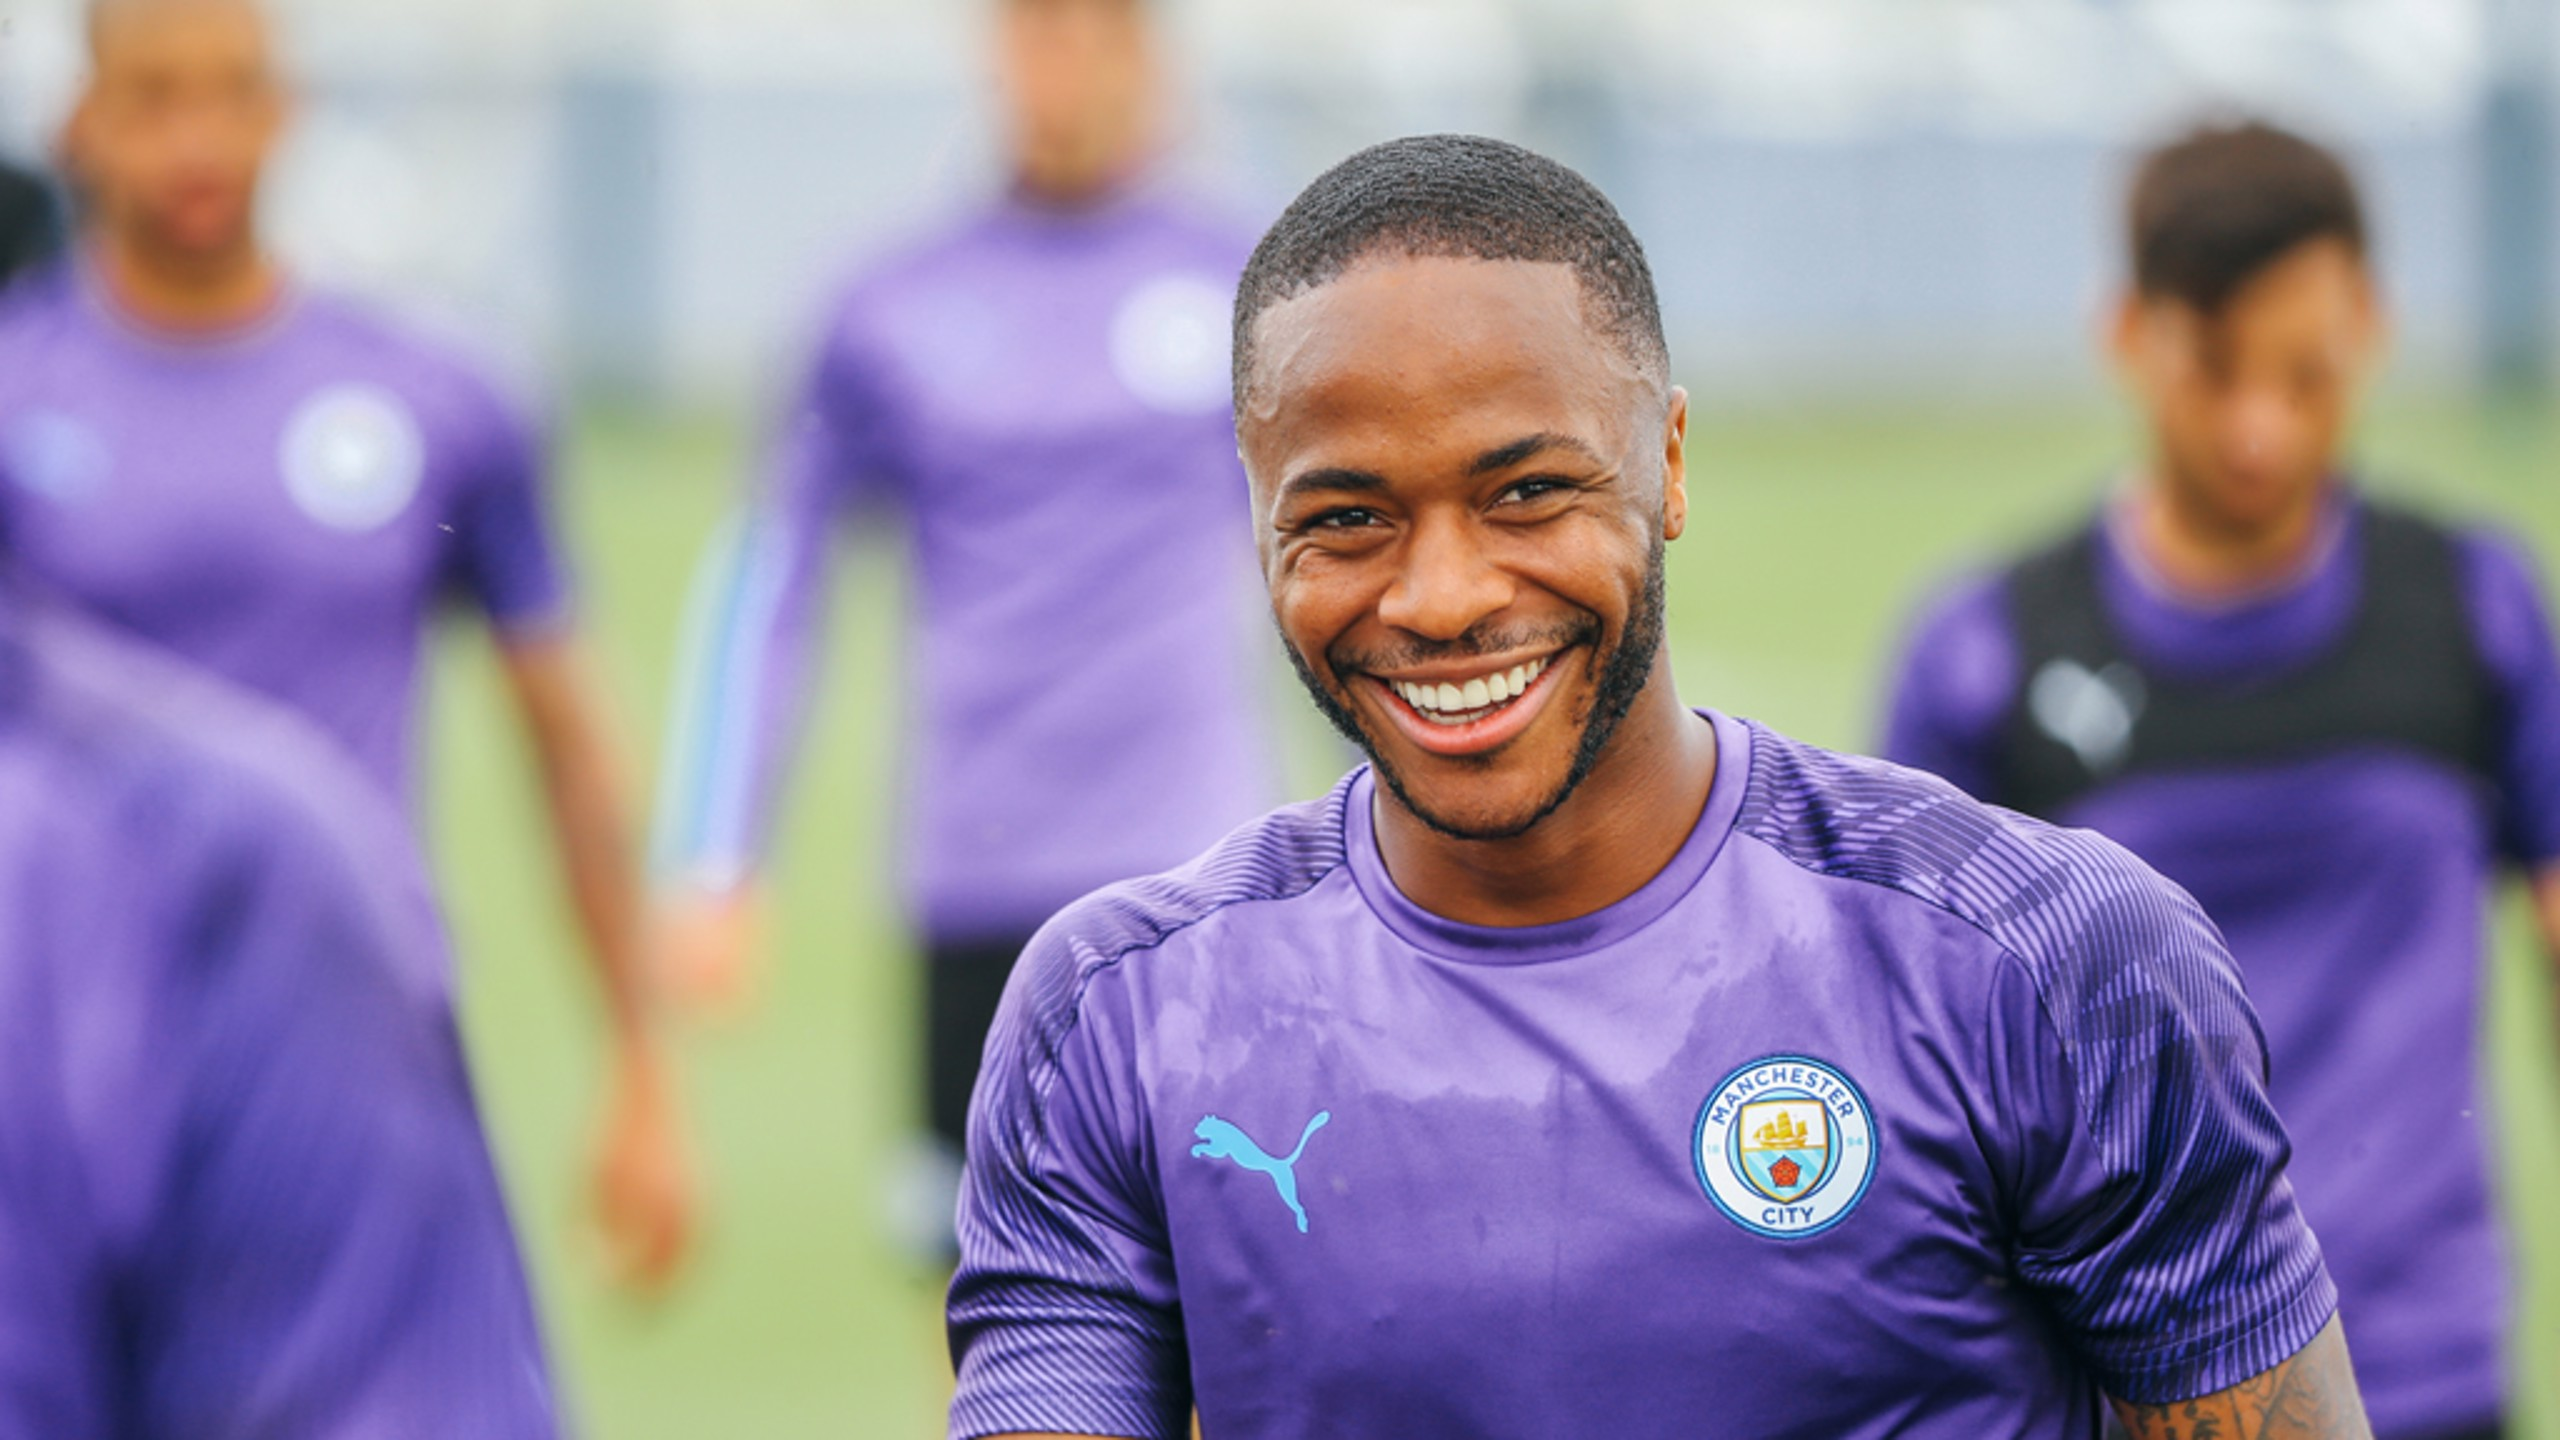 PURPLE PATCH: Raheem Sterling bagged four goals in pre-season!